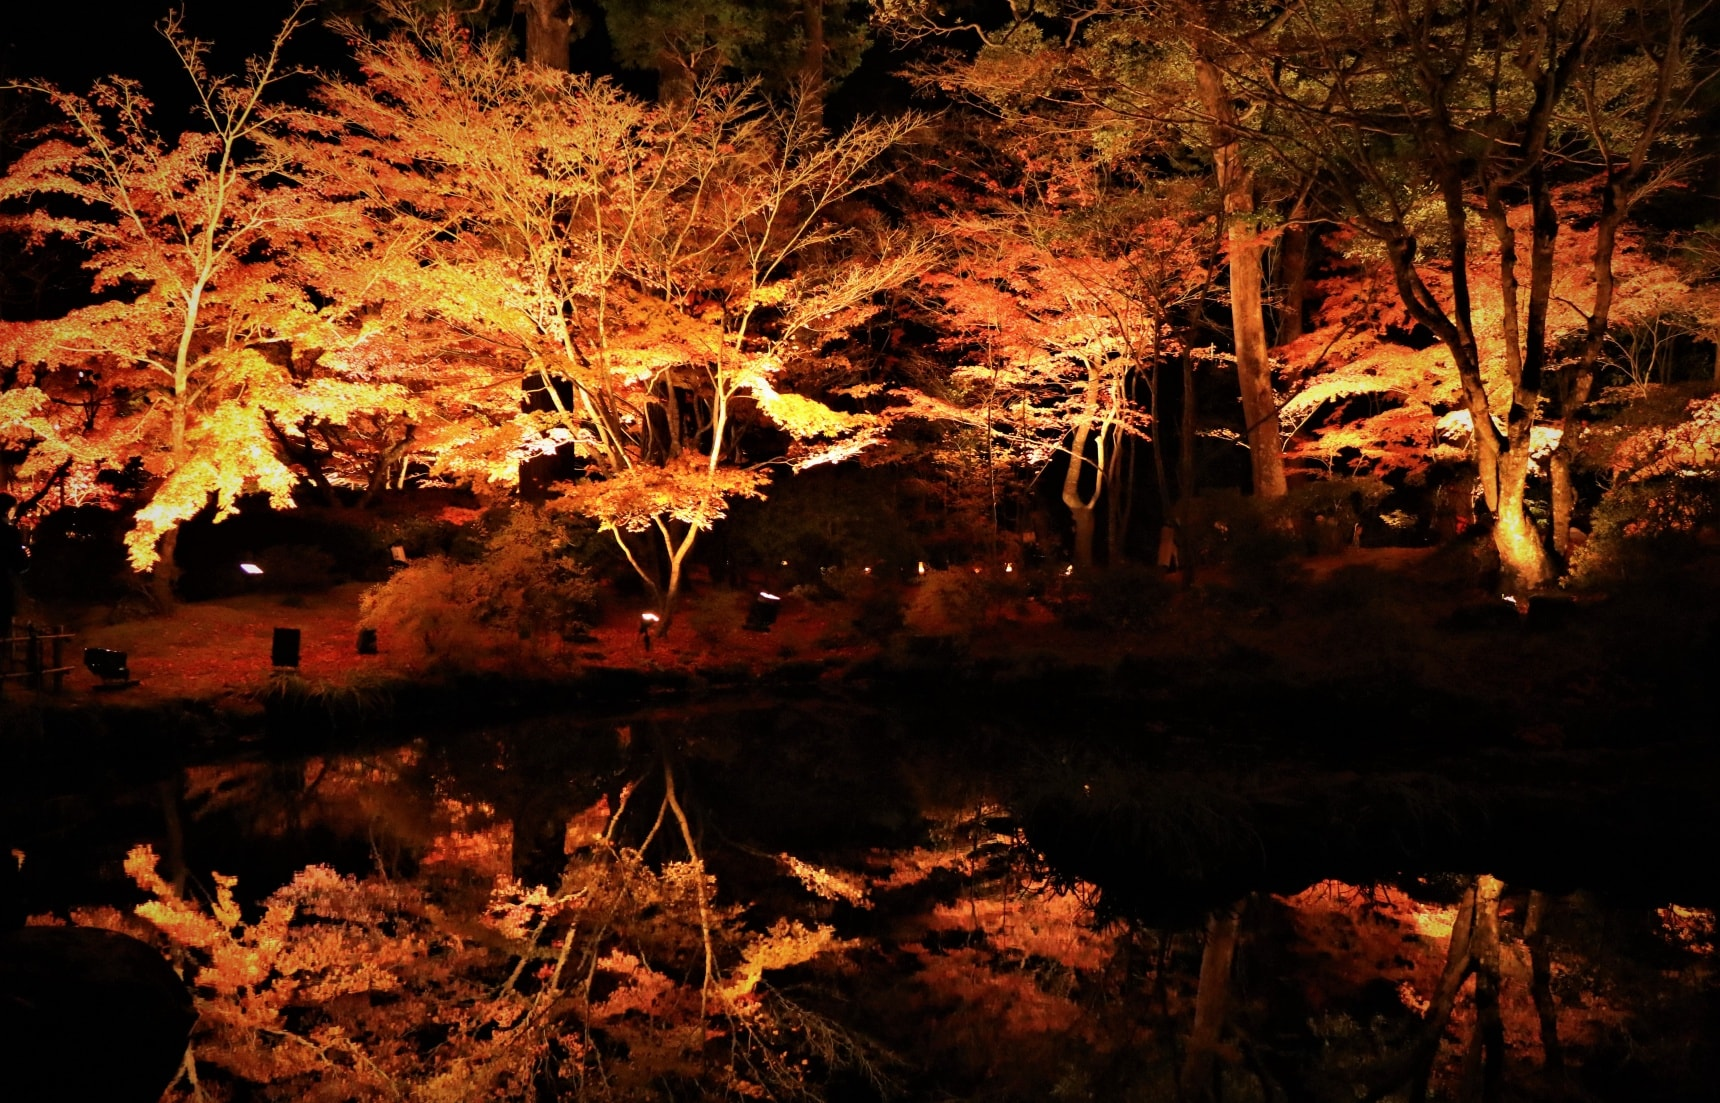 Beauty Beyond Be-'leaf' in Matsushima